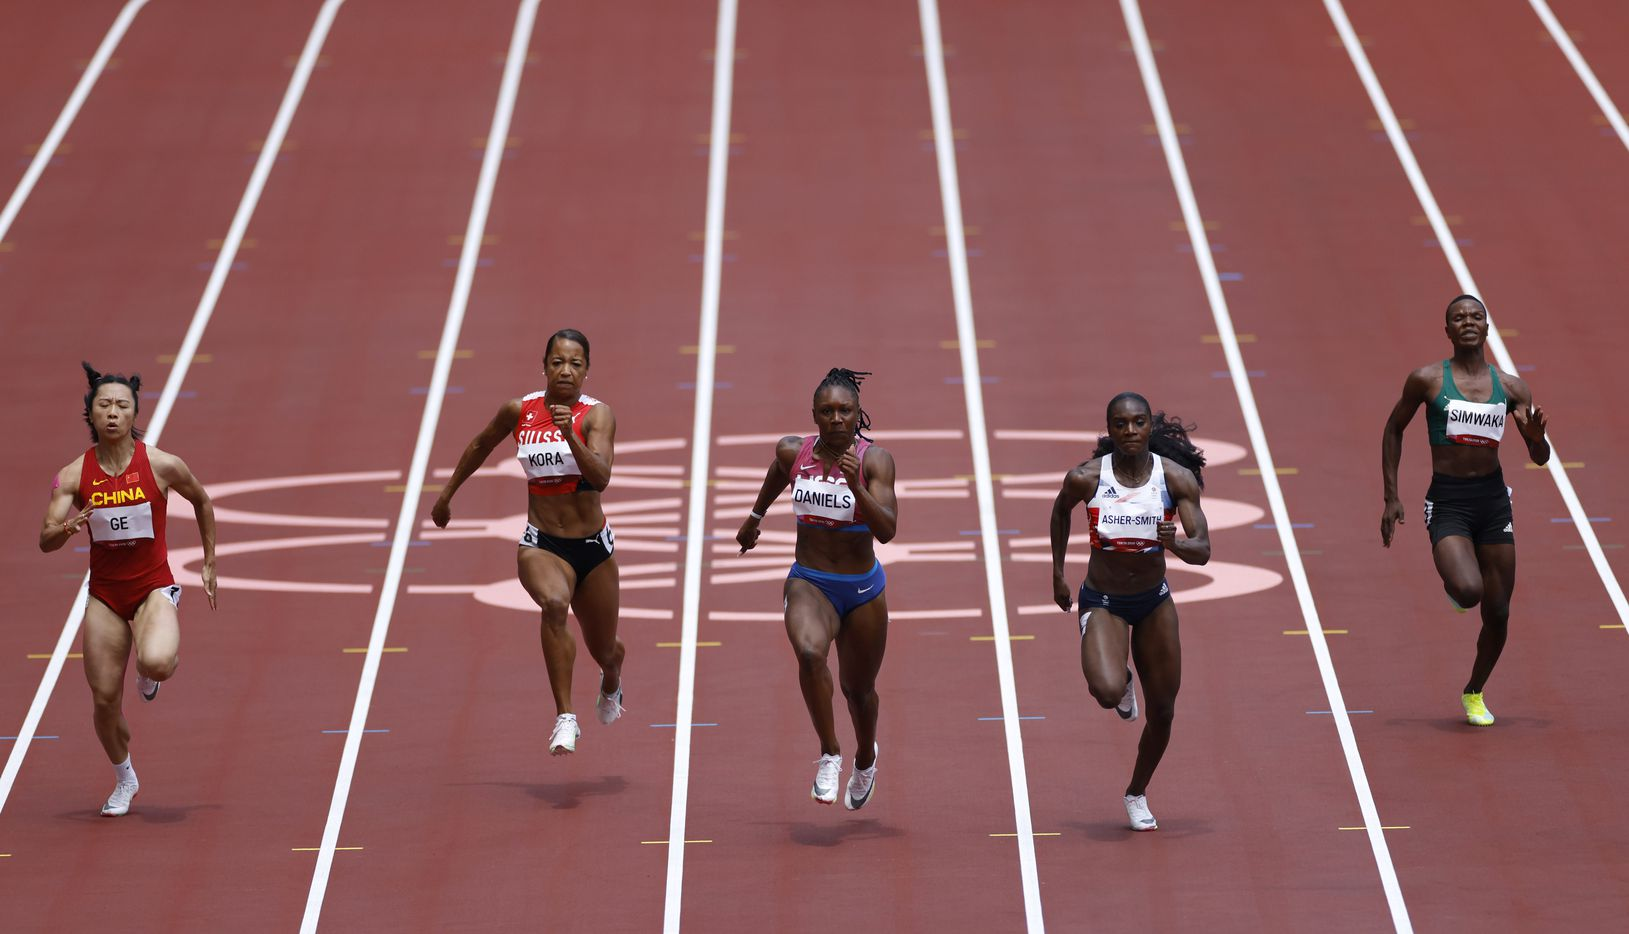 USA's Teahna Daniels (lane 5) competes in the  women's  100 meter race during the postponed 2020 Tokyo Olympics at Olympic Stadium, on Friday, July 30, 2021, in Tokyo, Japan. Daniels finished with a time of 11.04 seconds to advance to the next round. China's Manqi Ge, Switzerland's Salome Kora, Great Britain's Dina Asher-Smith, and Malawi's Asimenye Siwaka compete. (Vernon Bryant/The Dallas Morning News)